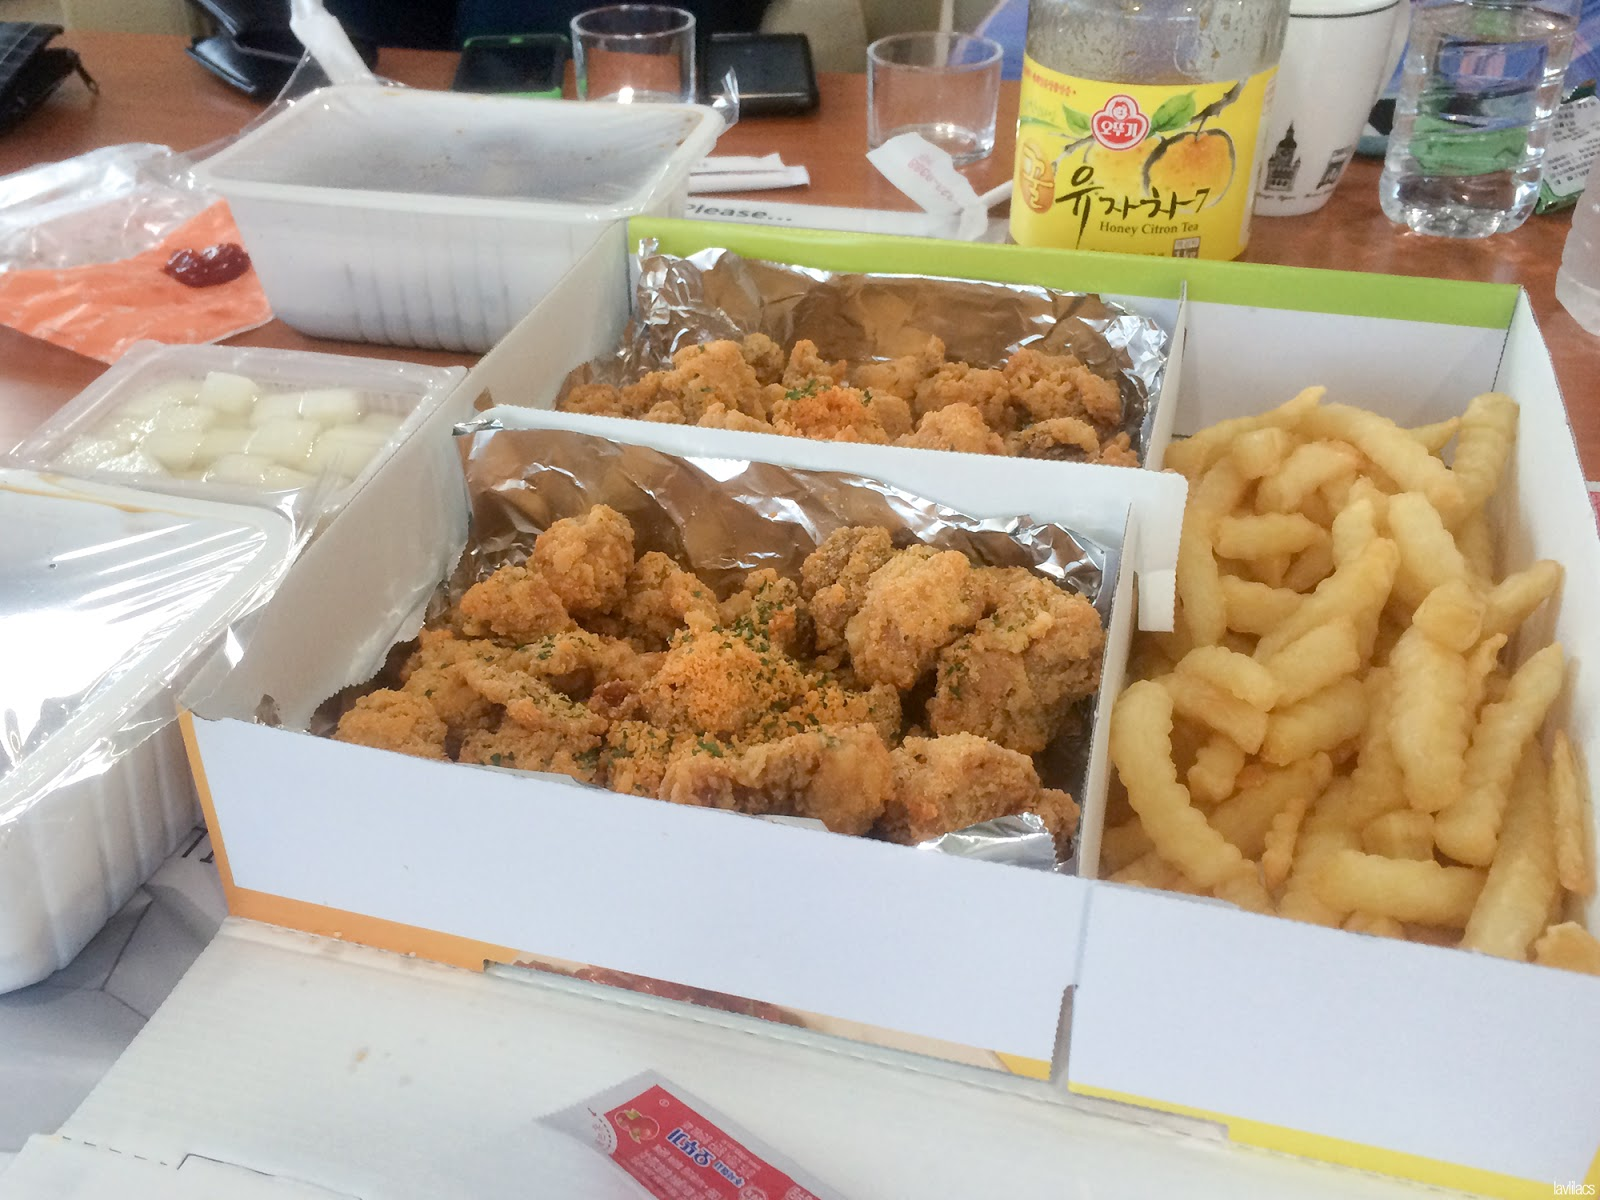 Seoul, Korea - Summer Study Abroad 2014 - Boneless fried chicken 순살 치킨 delivery cheese flavored